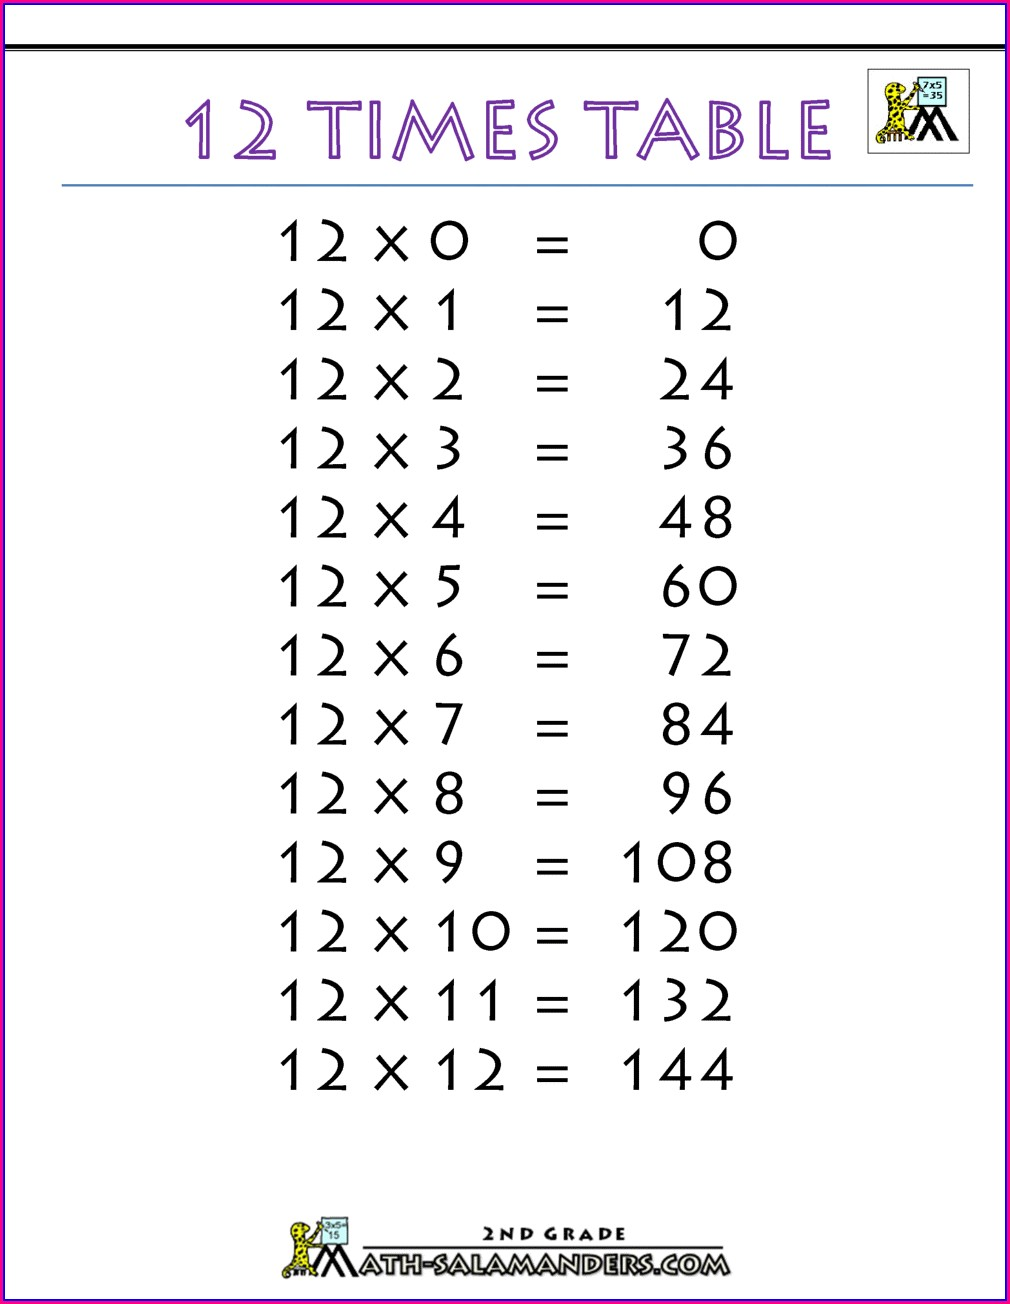 Times Table Worksheet Up To 12